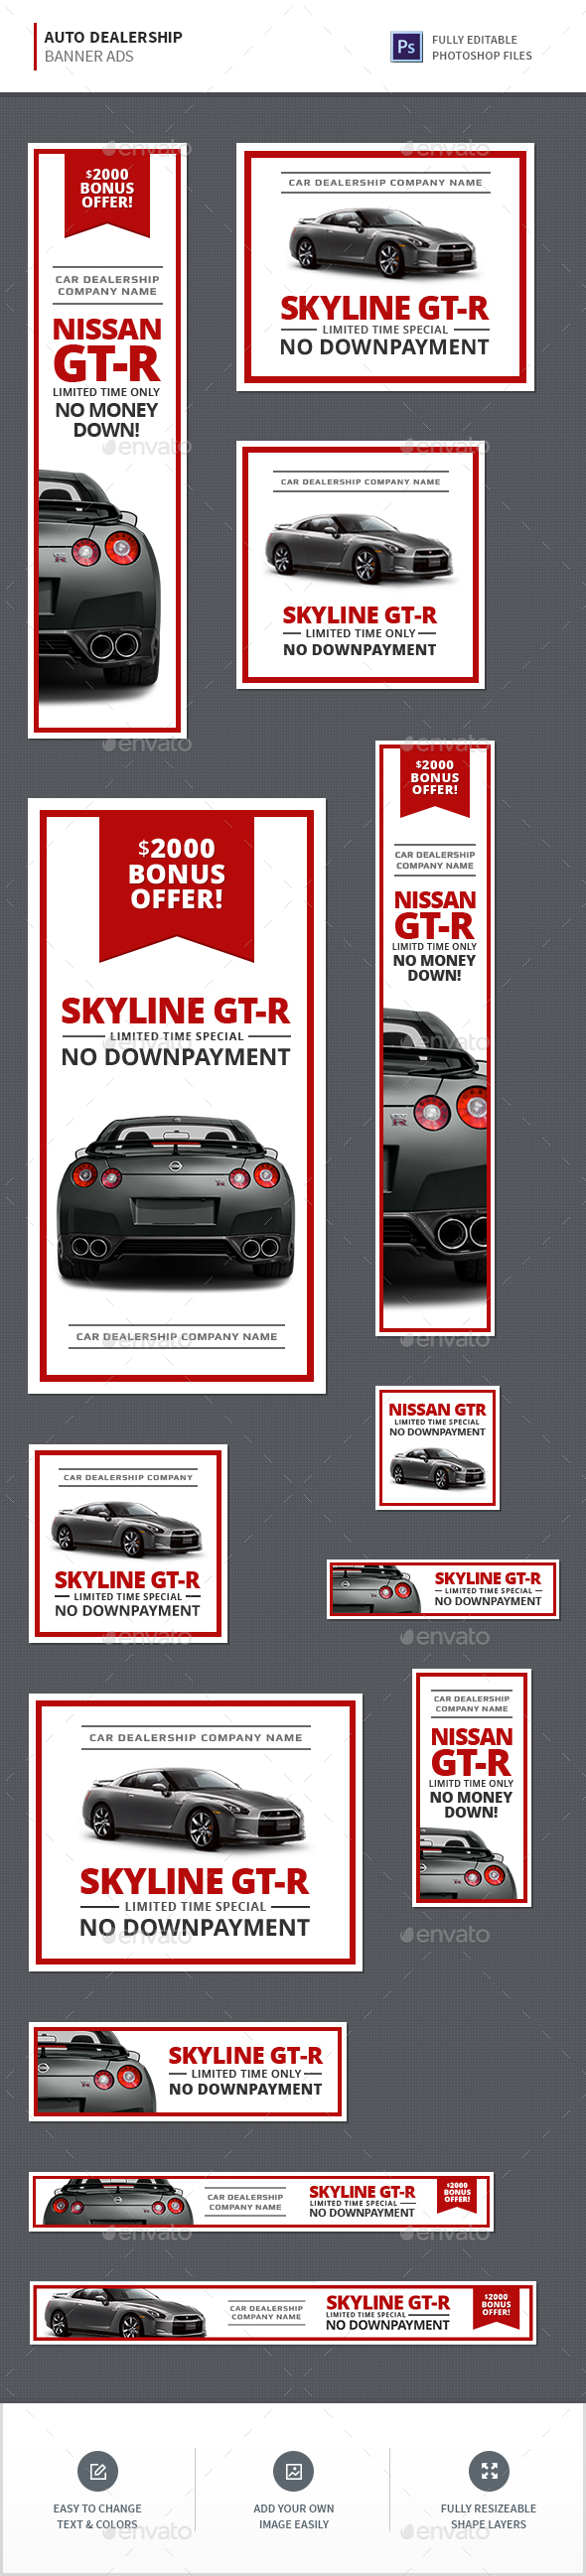 Auto Dealership Banners - Banners & Ads Web Elements